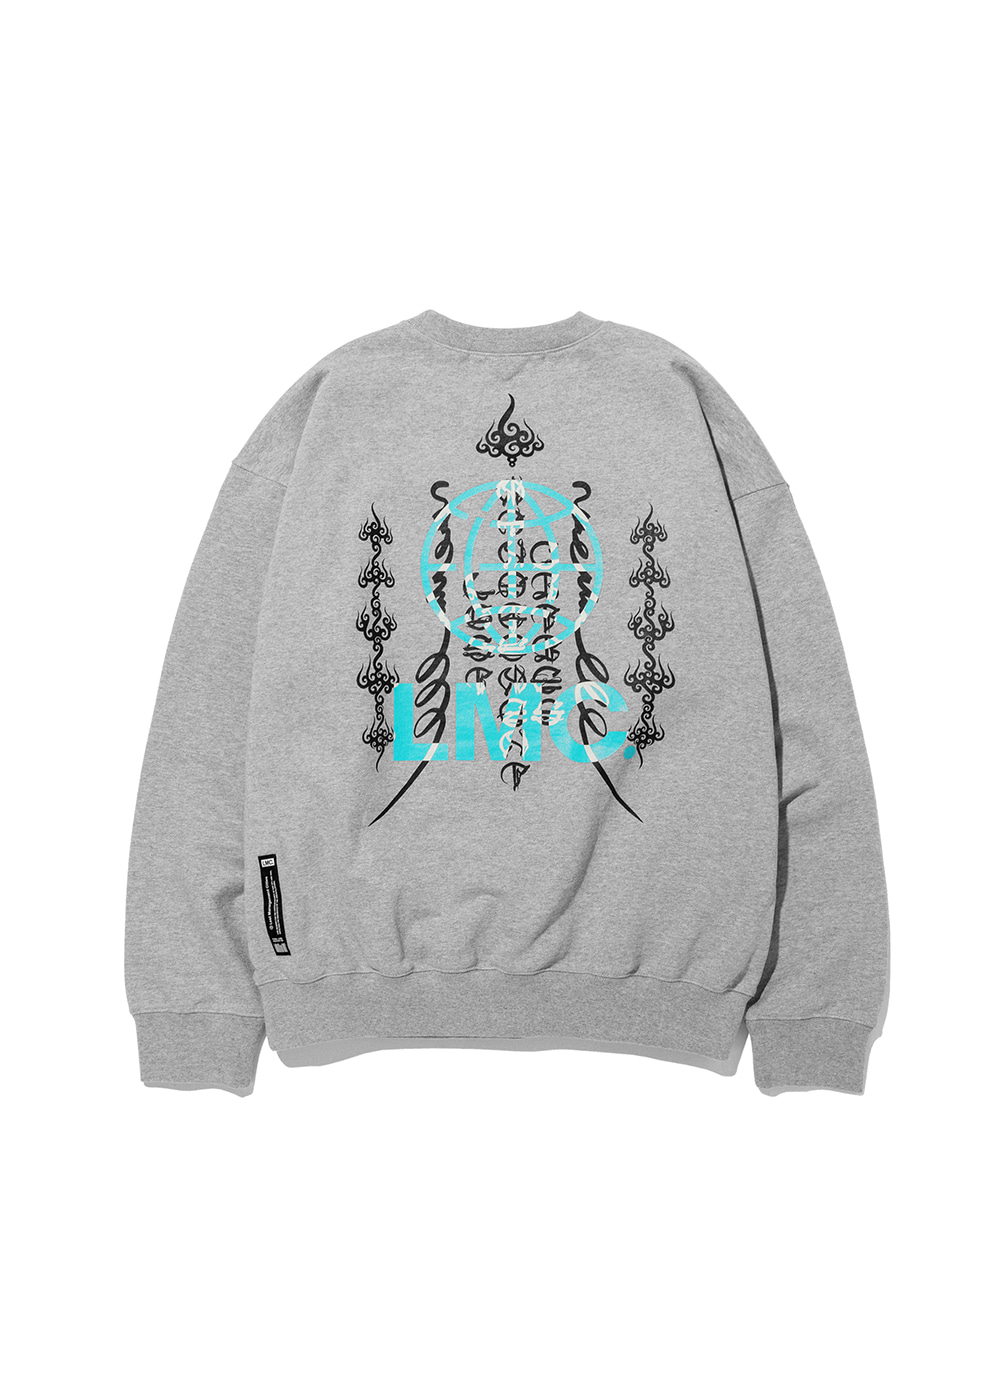 LMC FOR JODAE OVERSIZED SWEATSHIRT heather gray